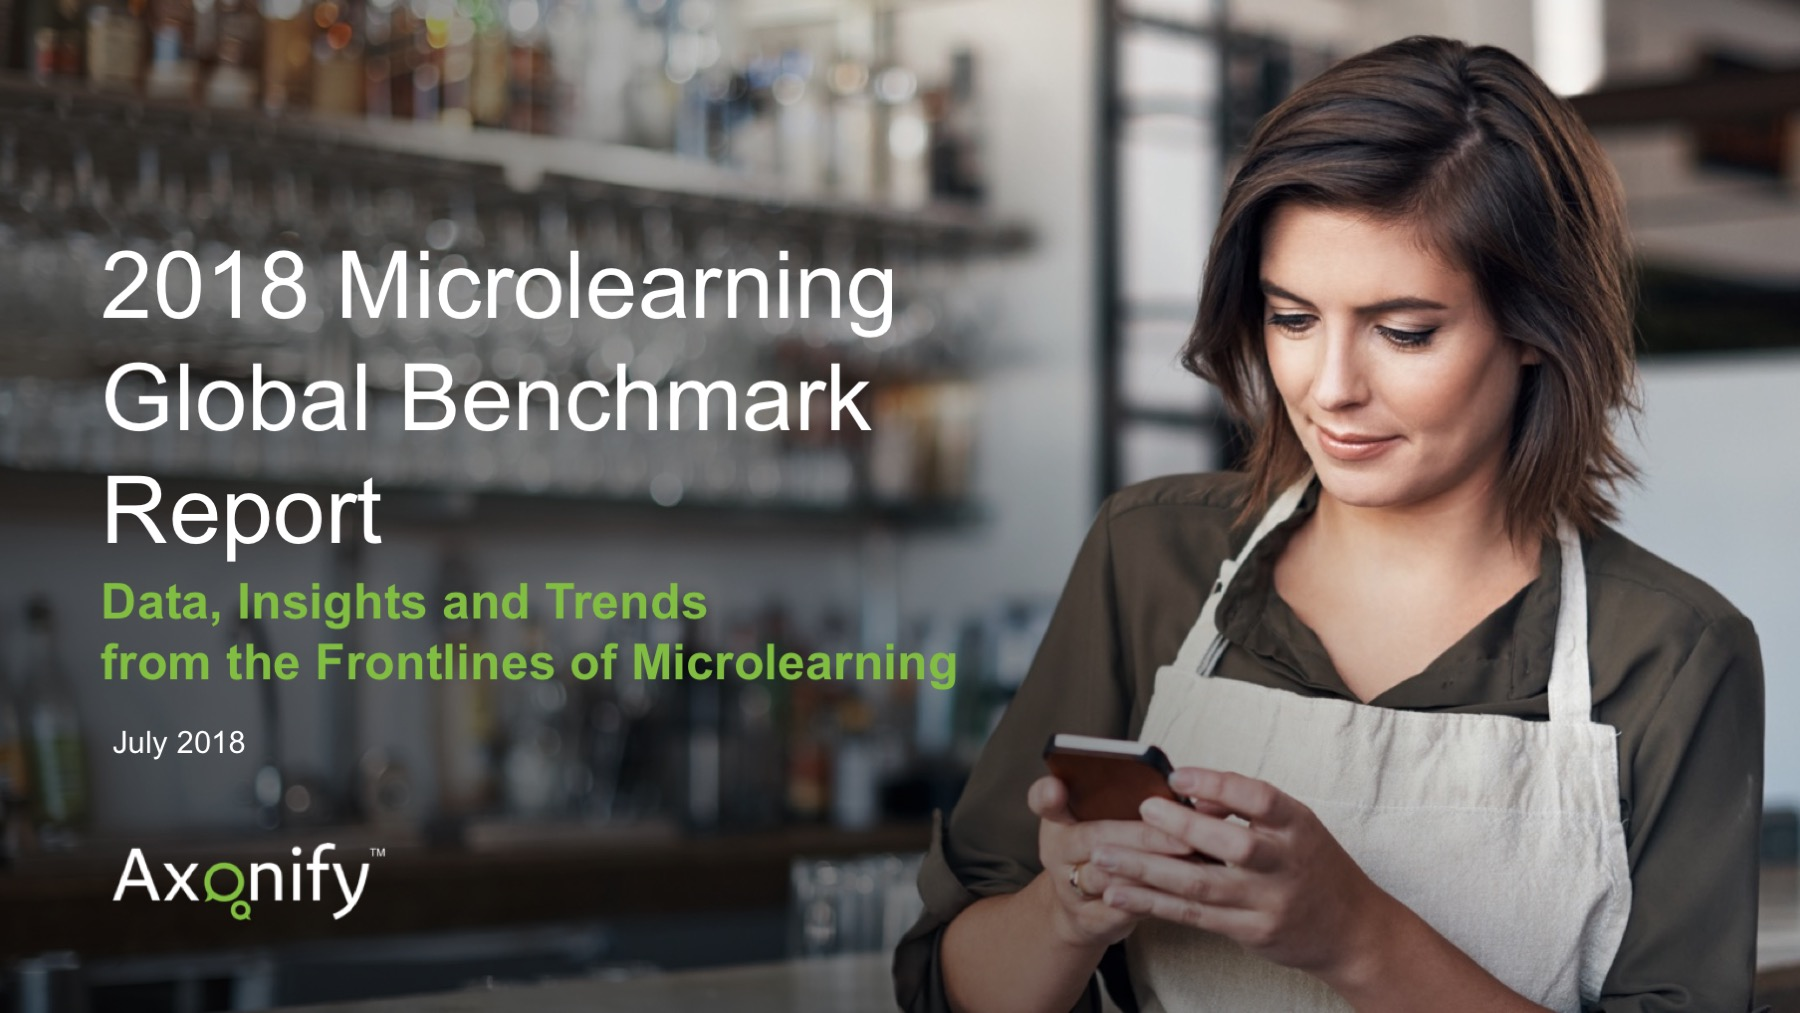 Axonify Microlearning Benchmark Report - Title